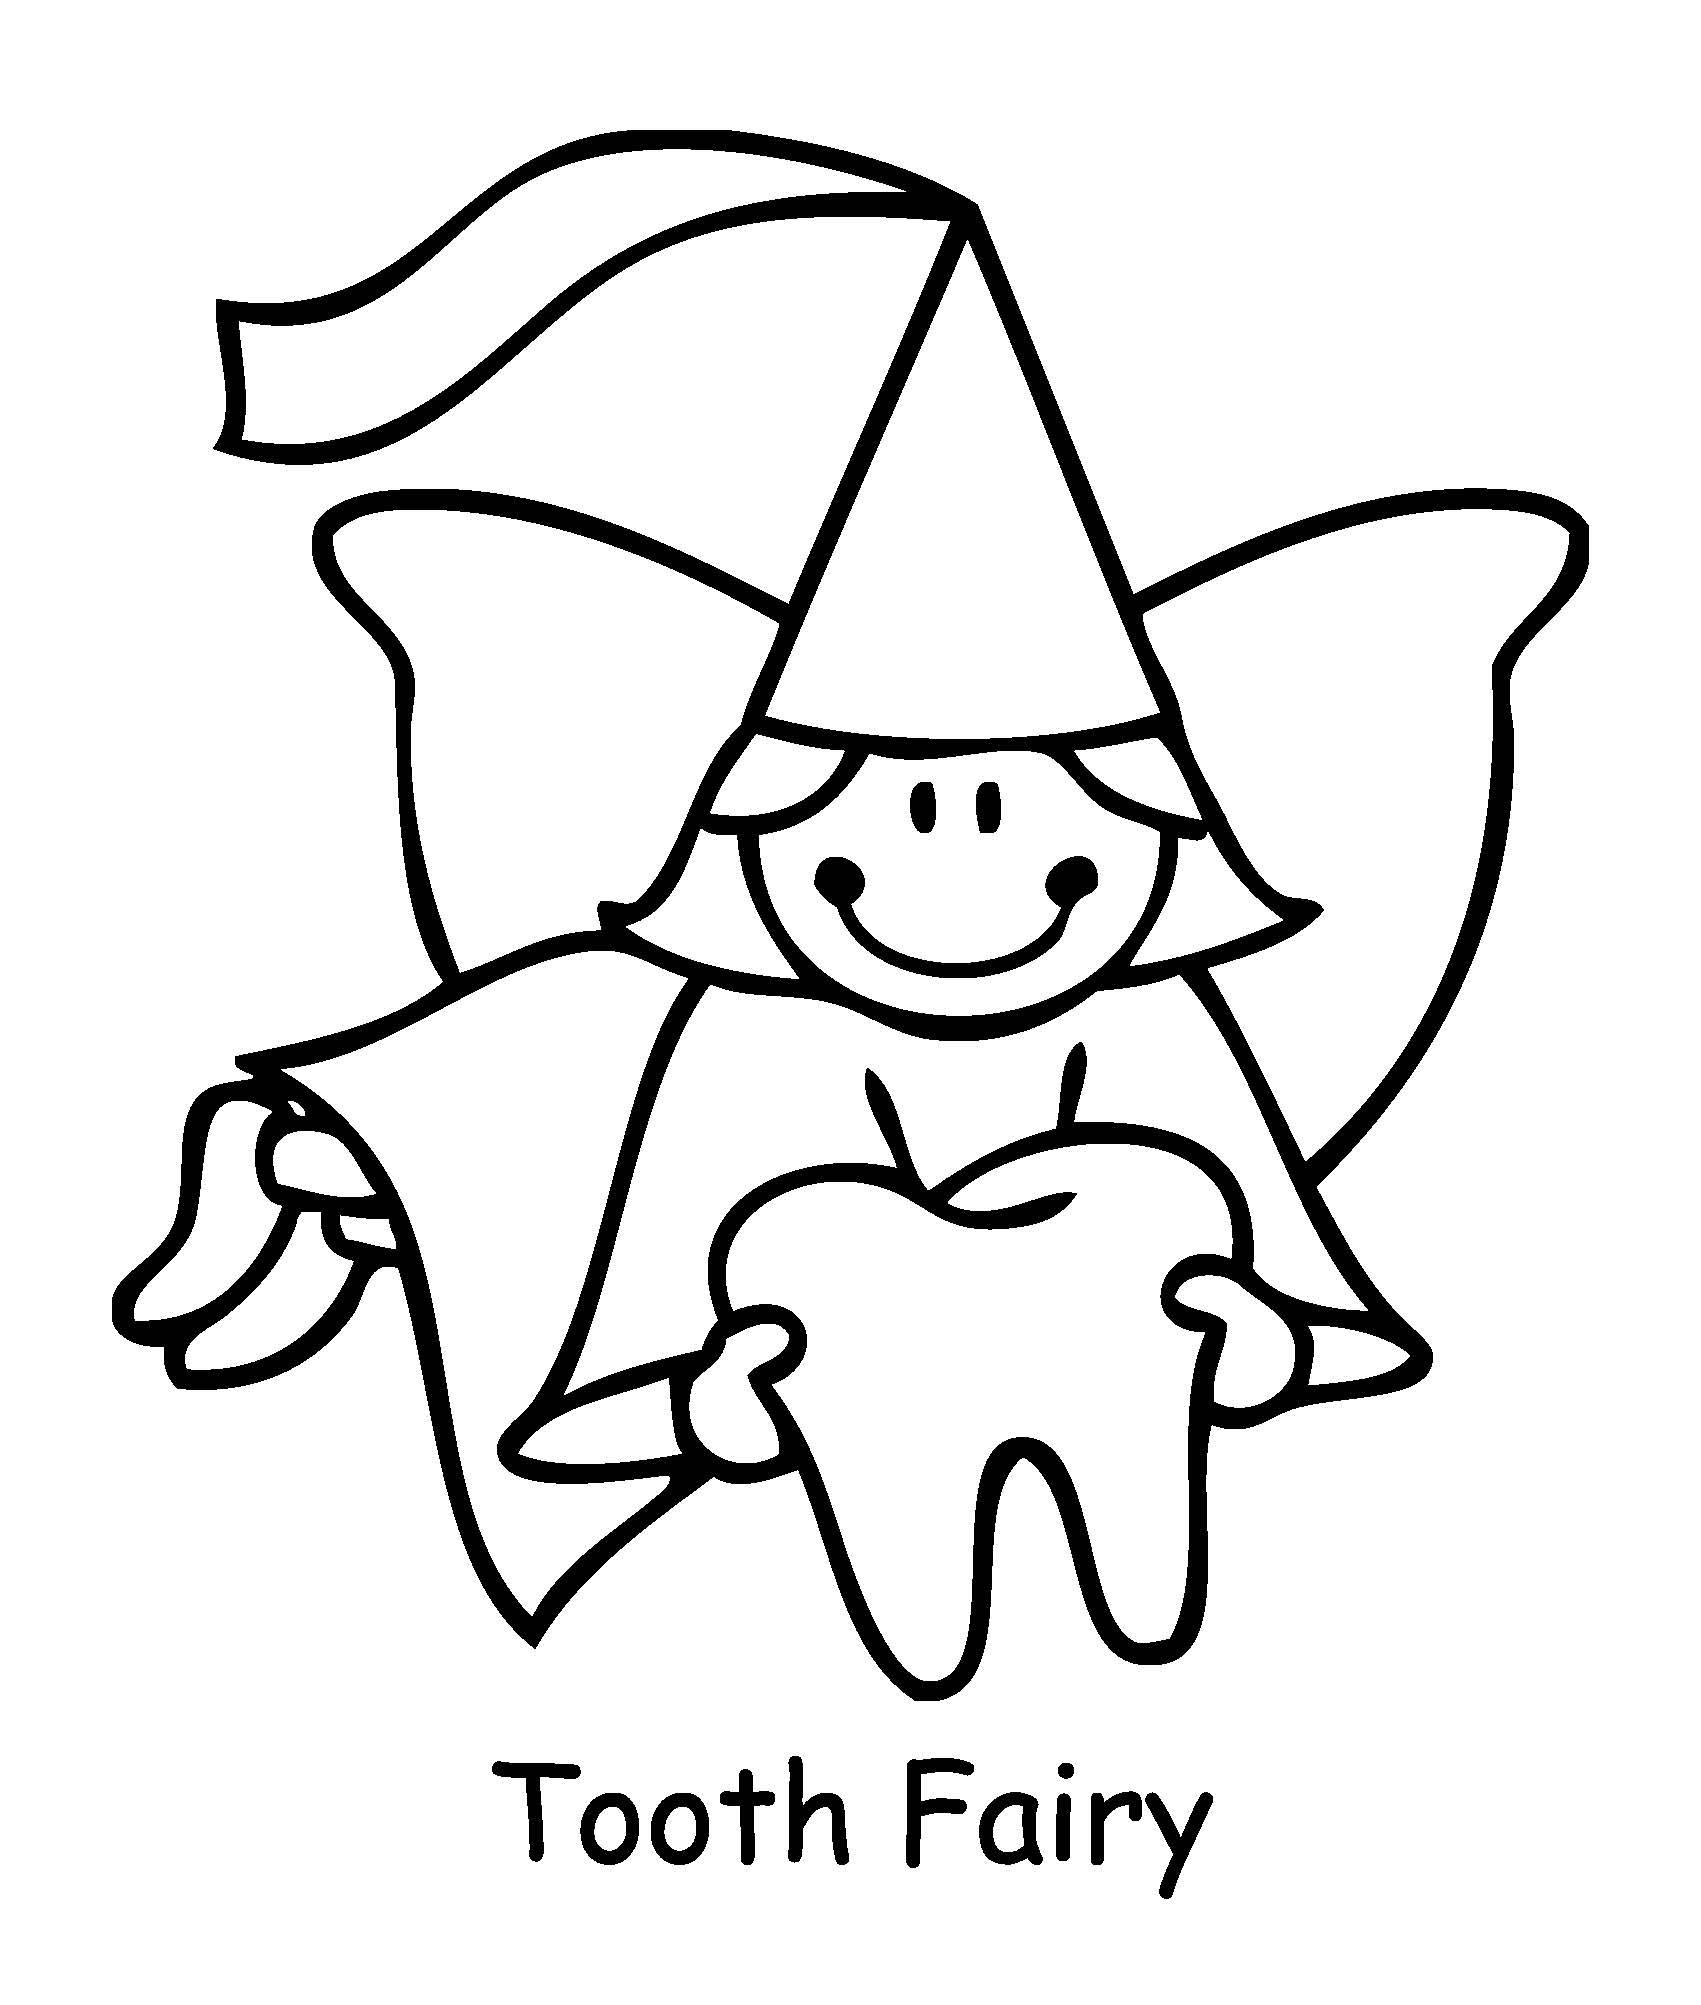 Tooth fairy coloring pages to download and print for free for Teeth coloring pages